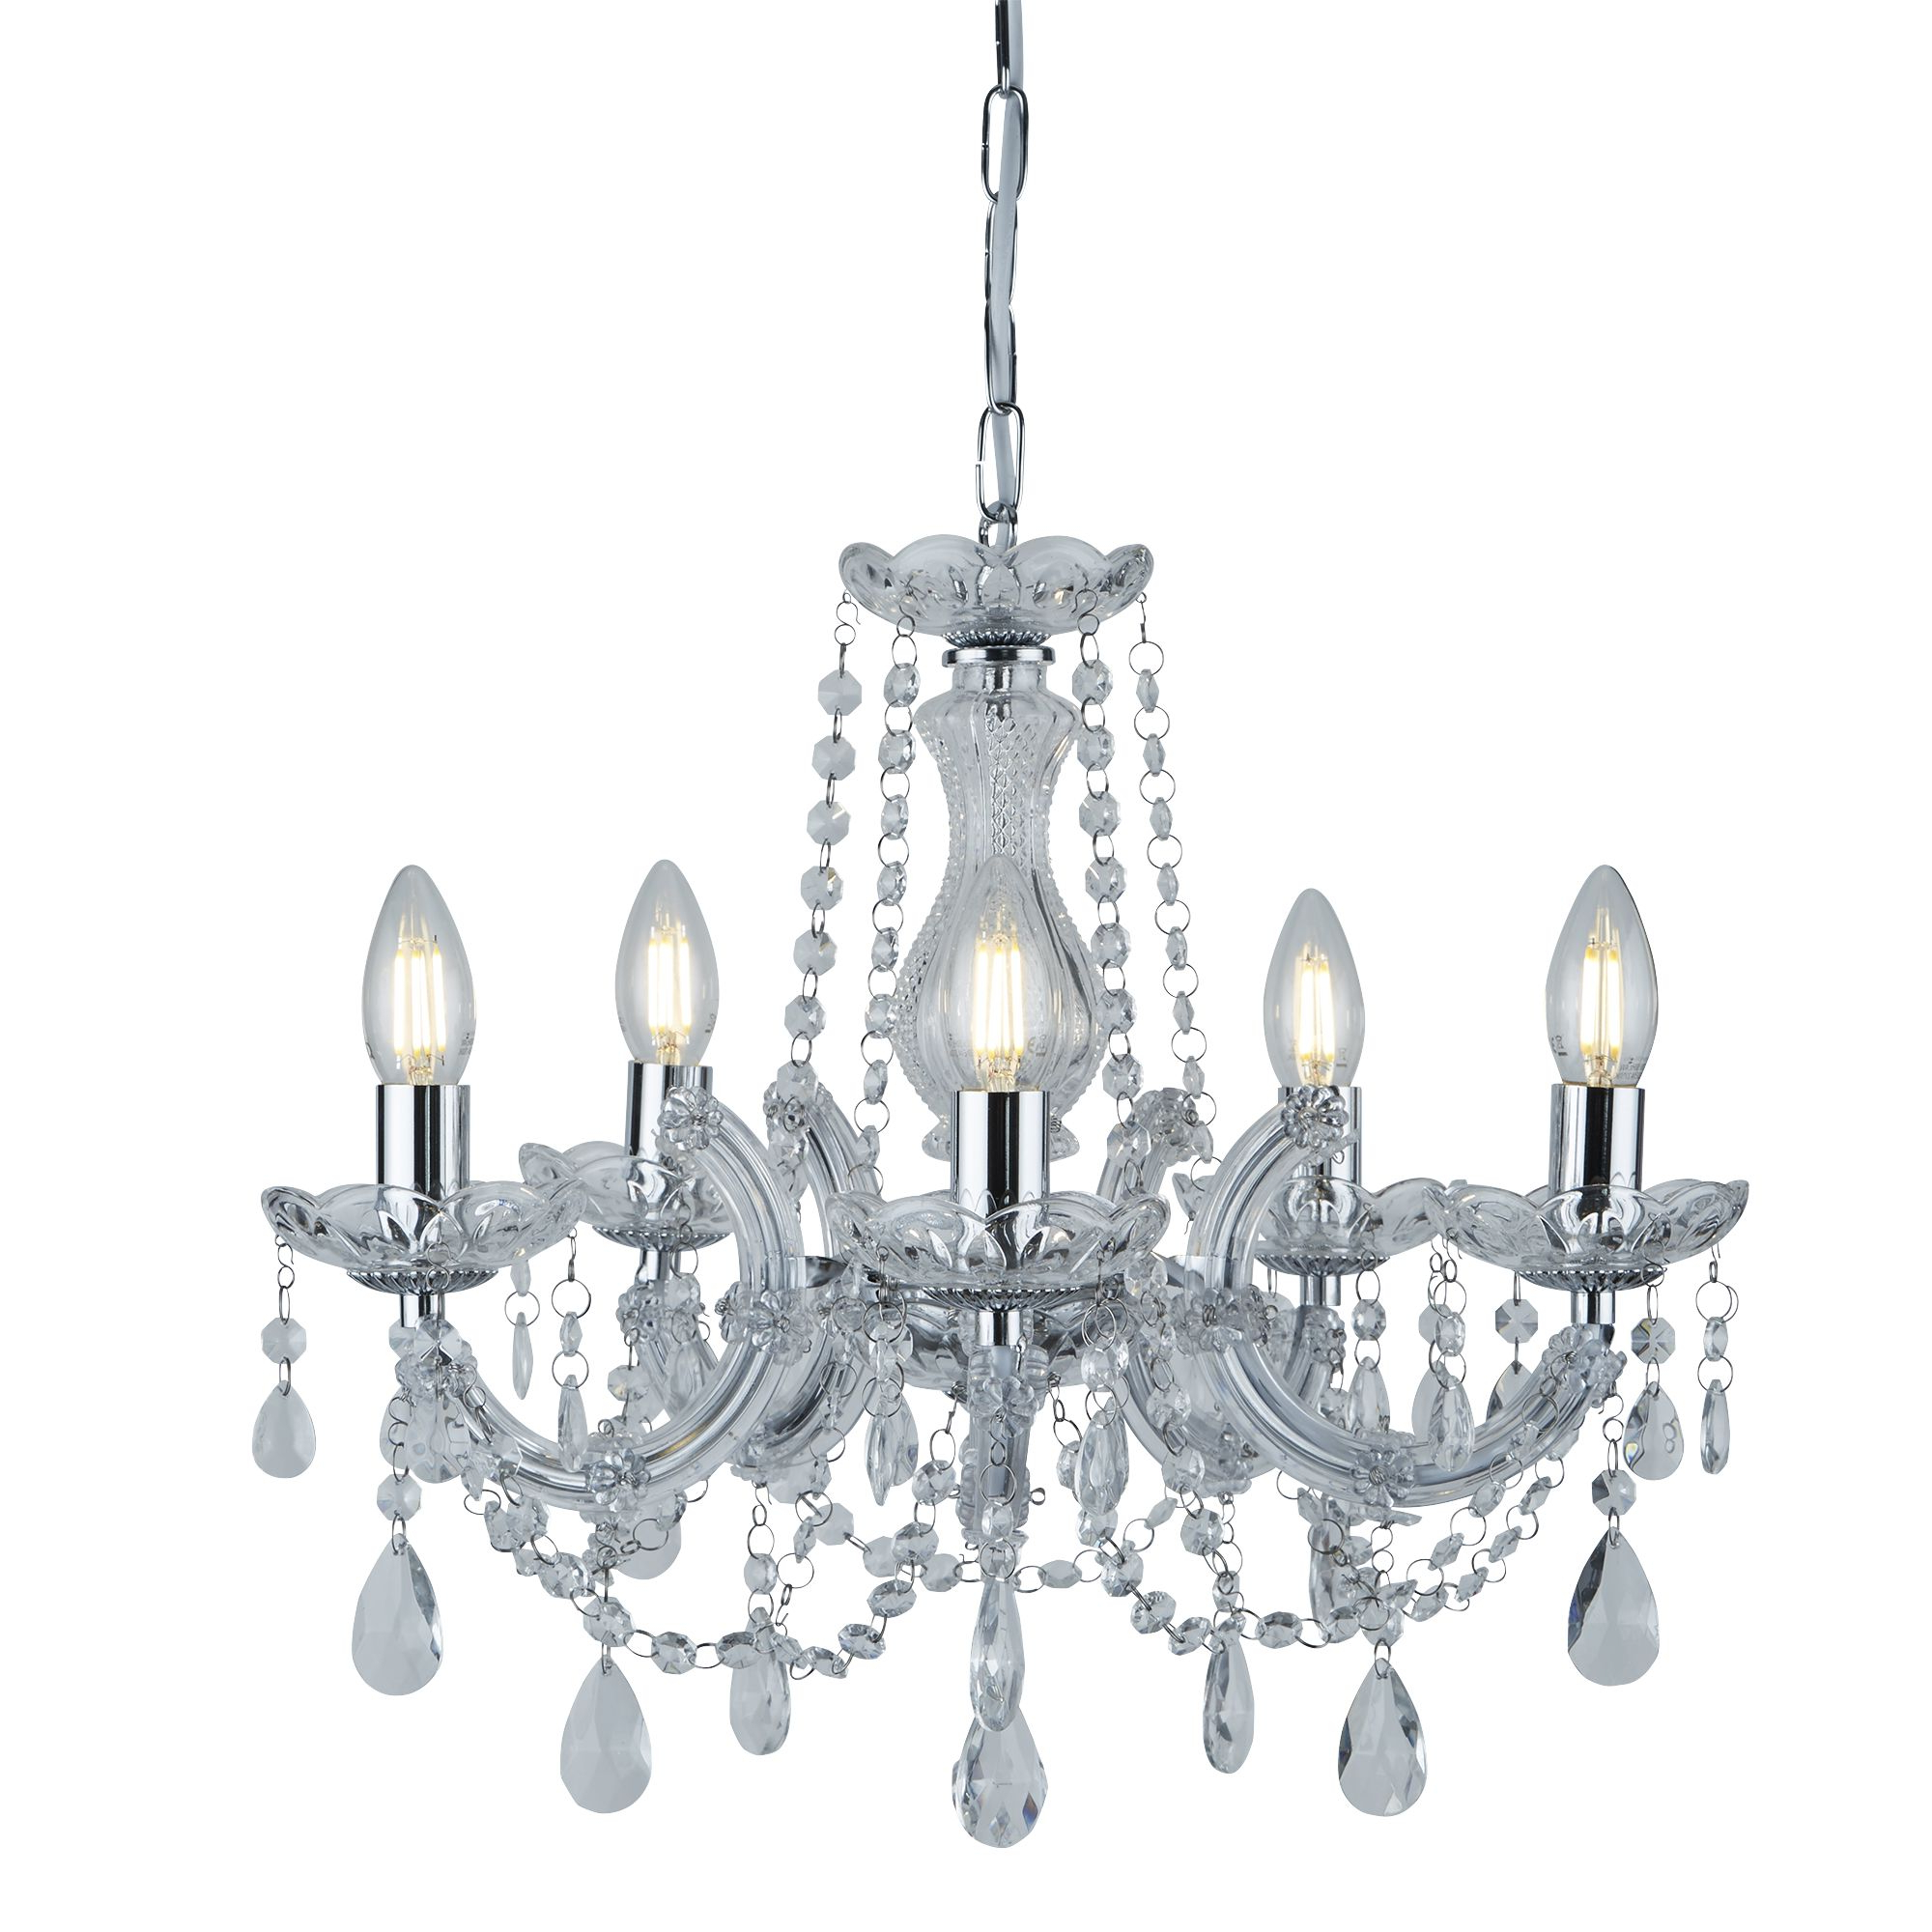 Thresa 5 Light Shaded Chandeliers With Favorite Marie Therese Chrome 5 Light Chandelier With Crystal Drops (View 17 of 20)